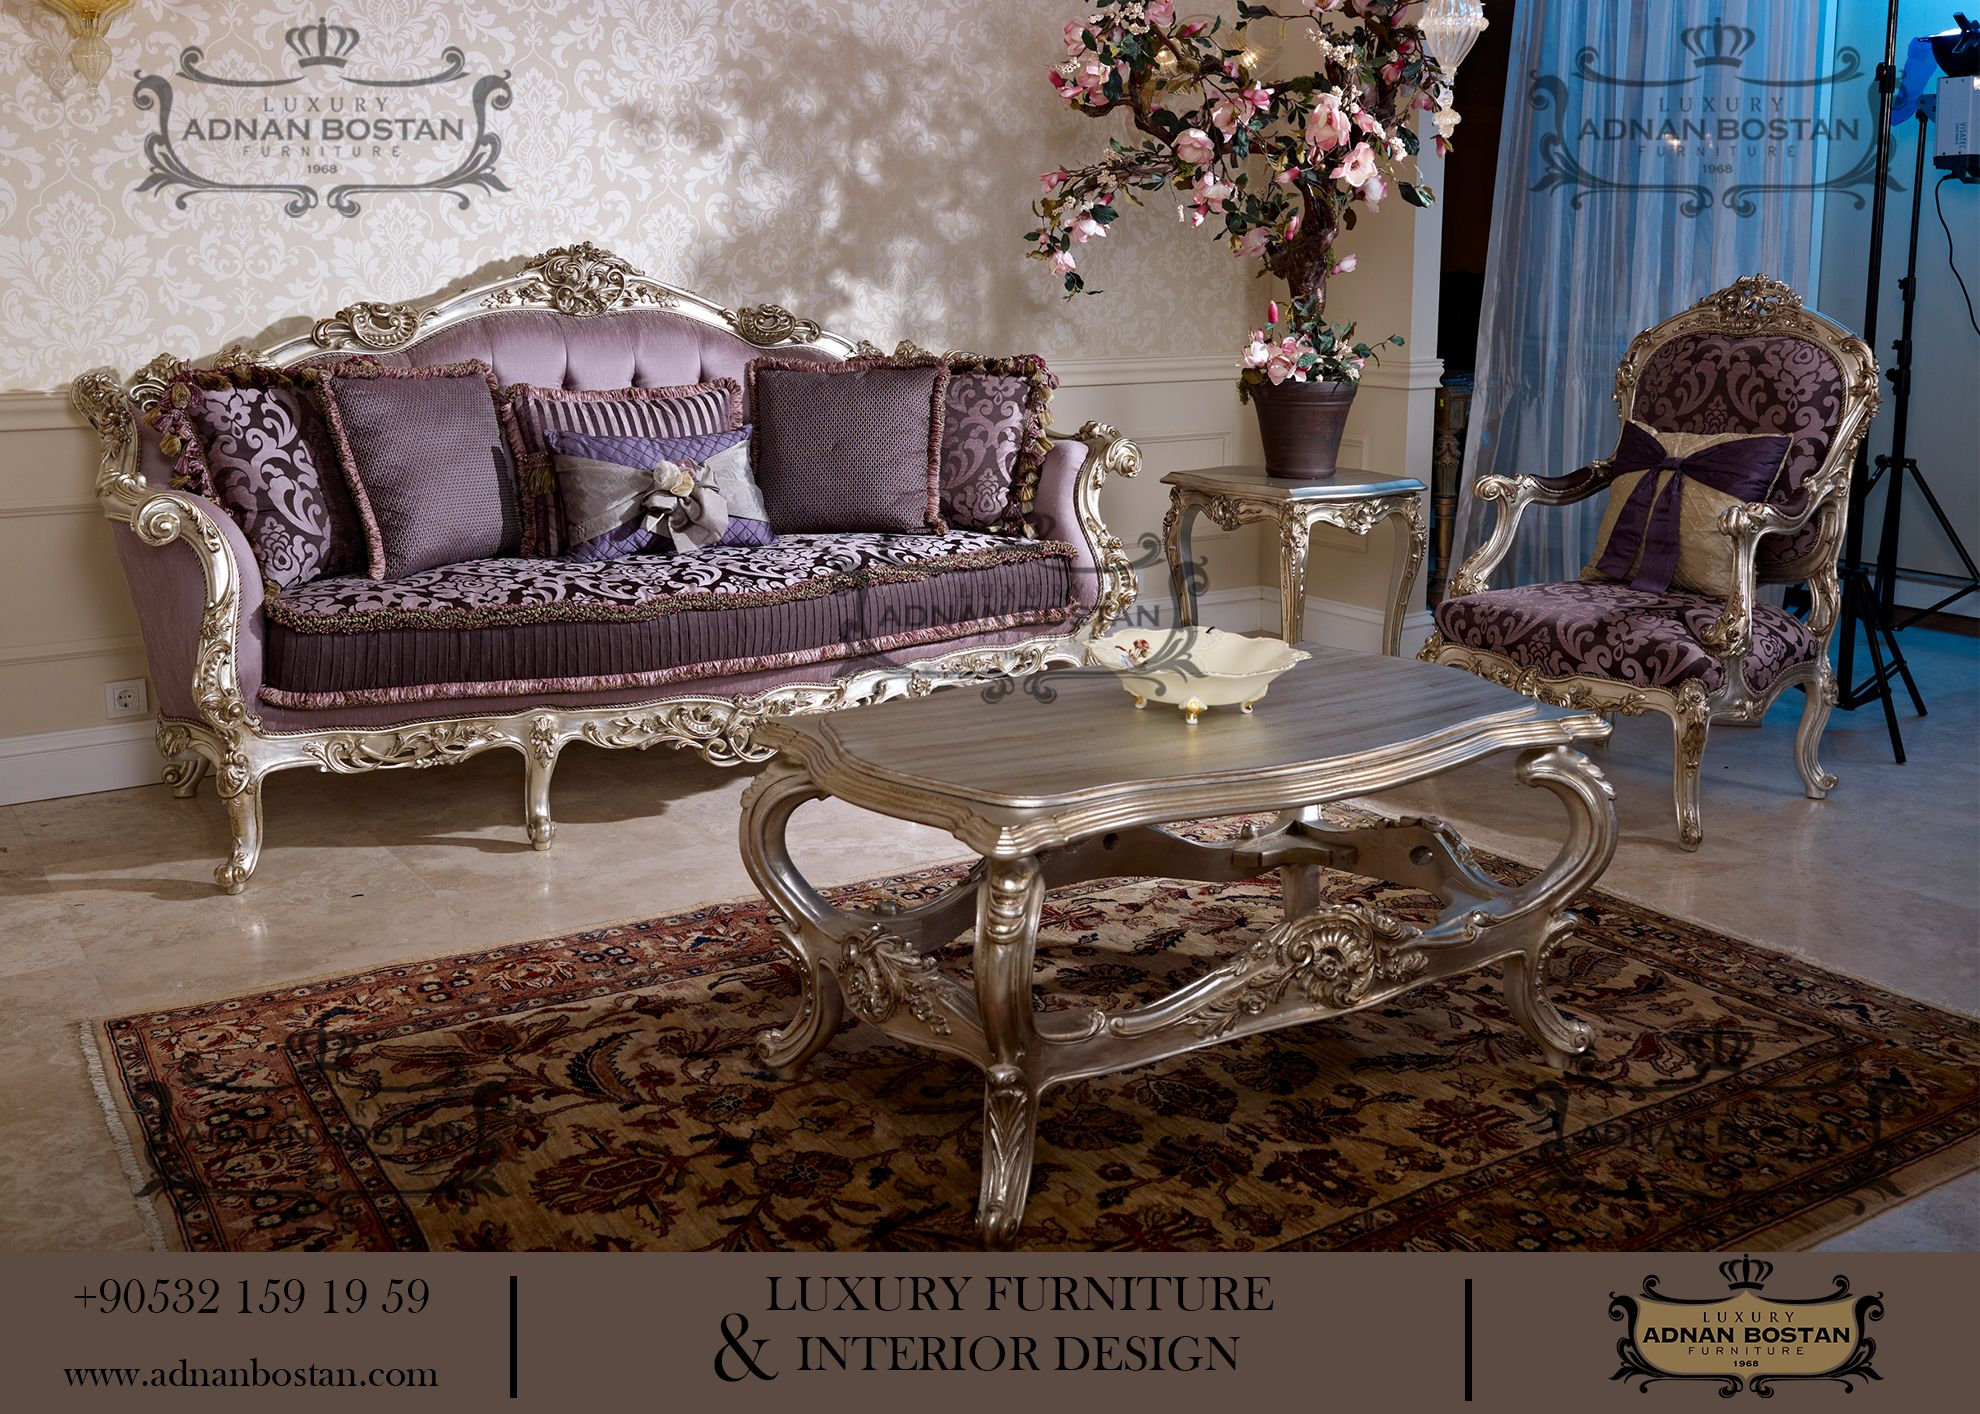 AdnanBostanFurnitureAndDecorations LuxuryFurniture